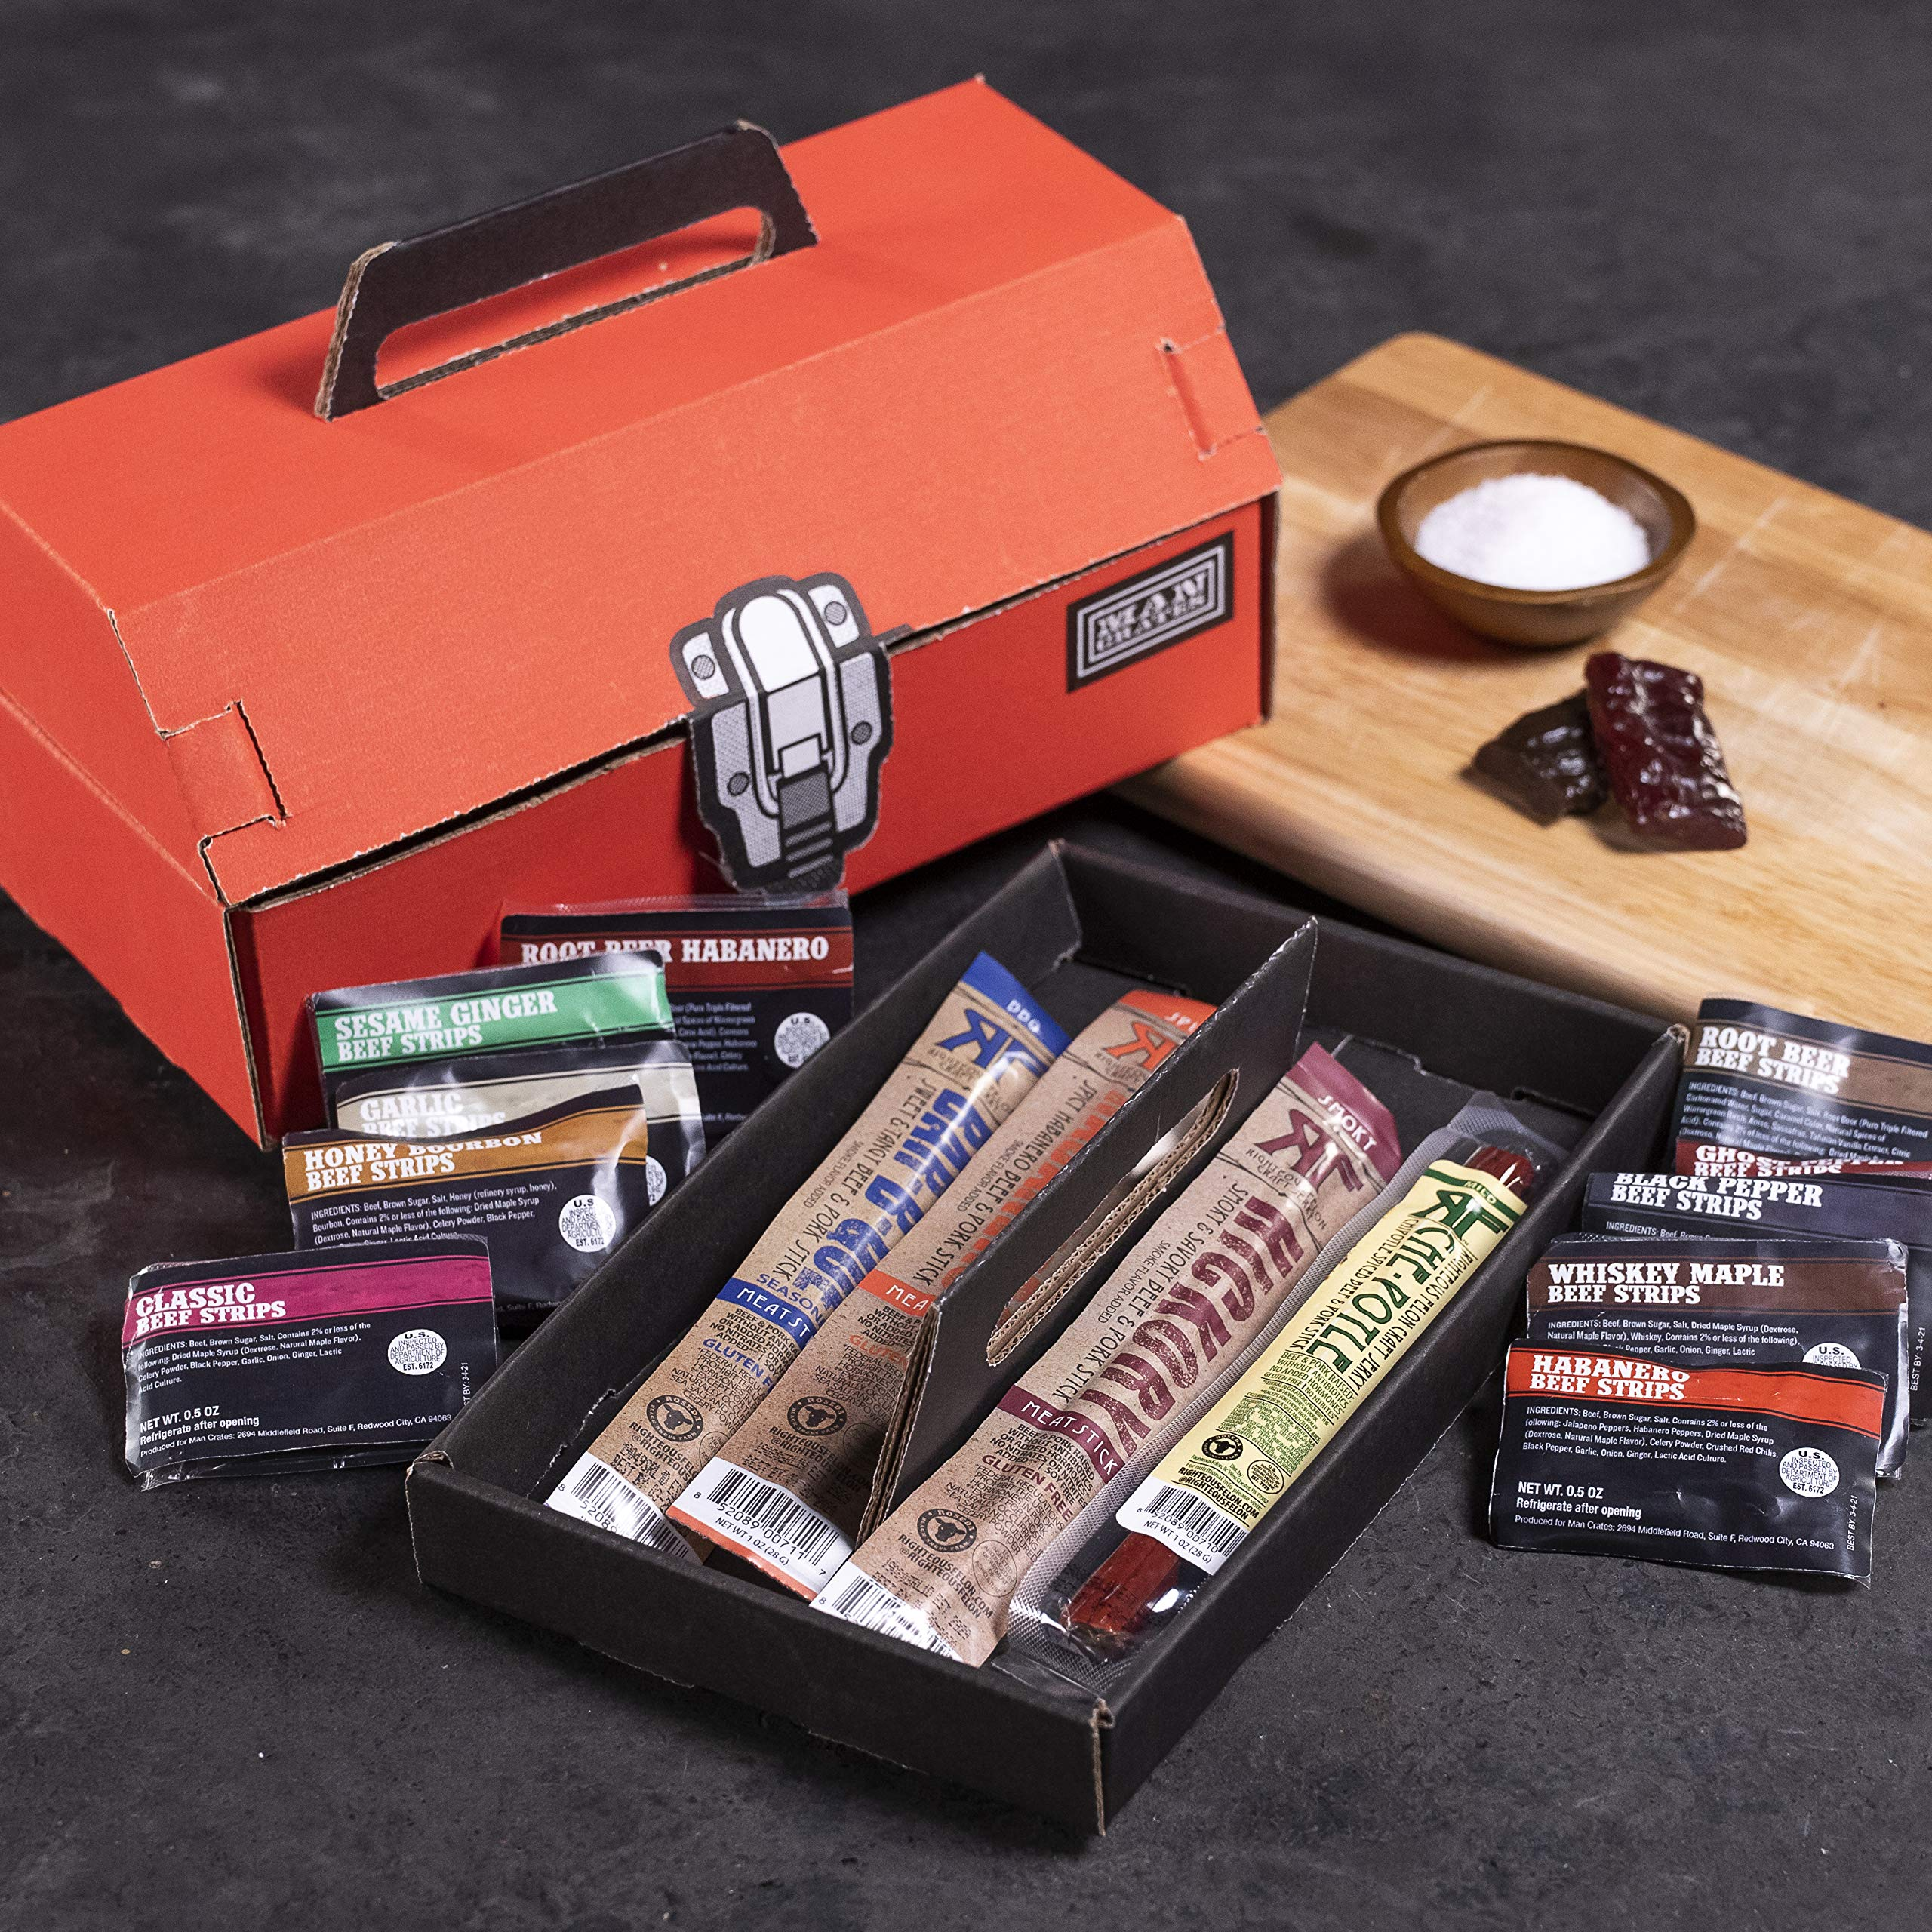 Man Crates Jerky Tool Box - Unique Gift For Men - Includes 14 Delicious Beef Jerky Flavors - In A Delightfully Surprising Tool-Shaped Box by Man Crates (Image #2)